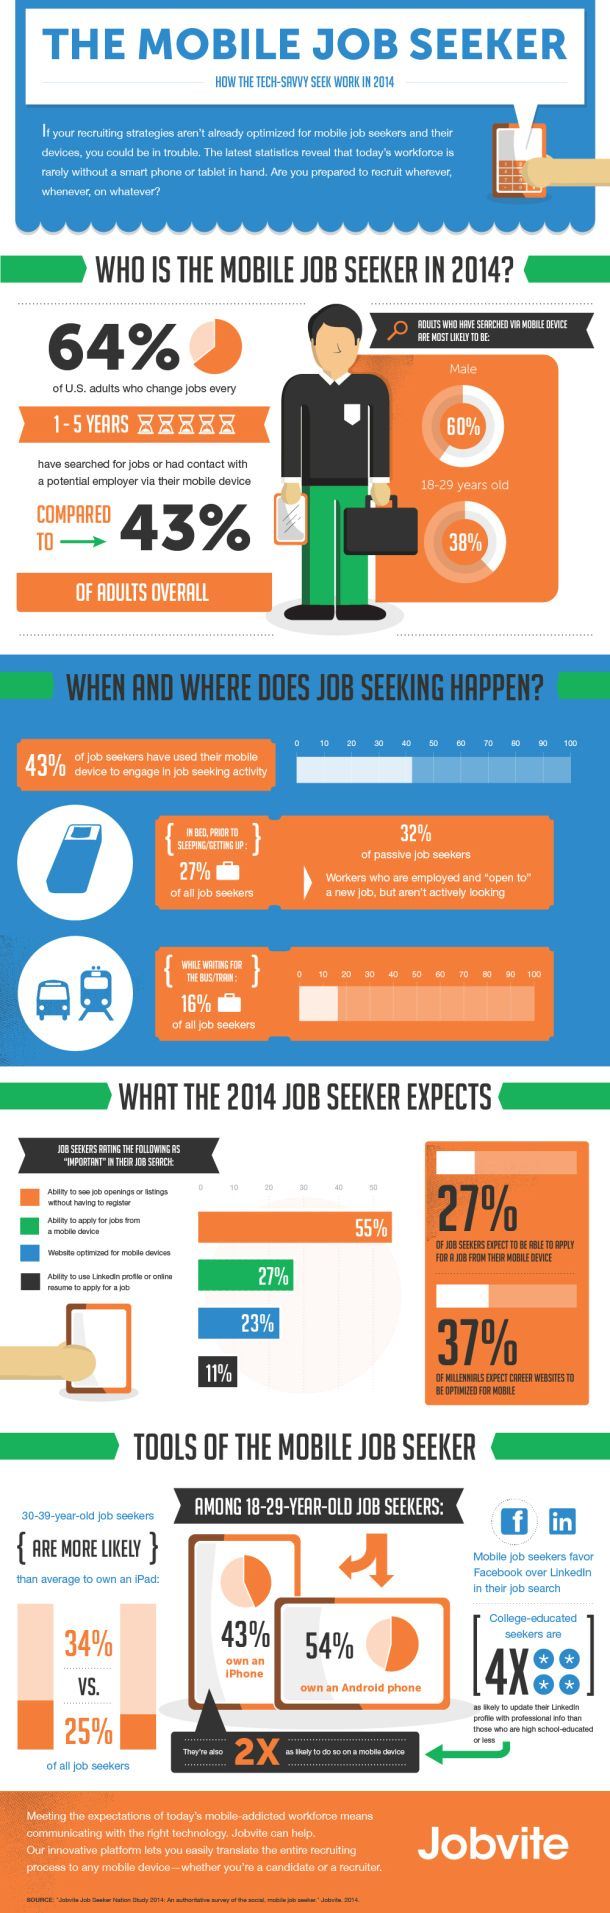 17 best images about infographics career this website is for is your first and best source for all of the information you re looking for from general topics to more of what you would expect